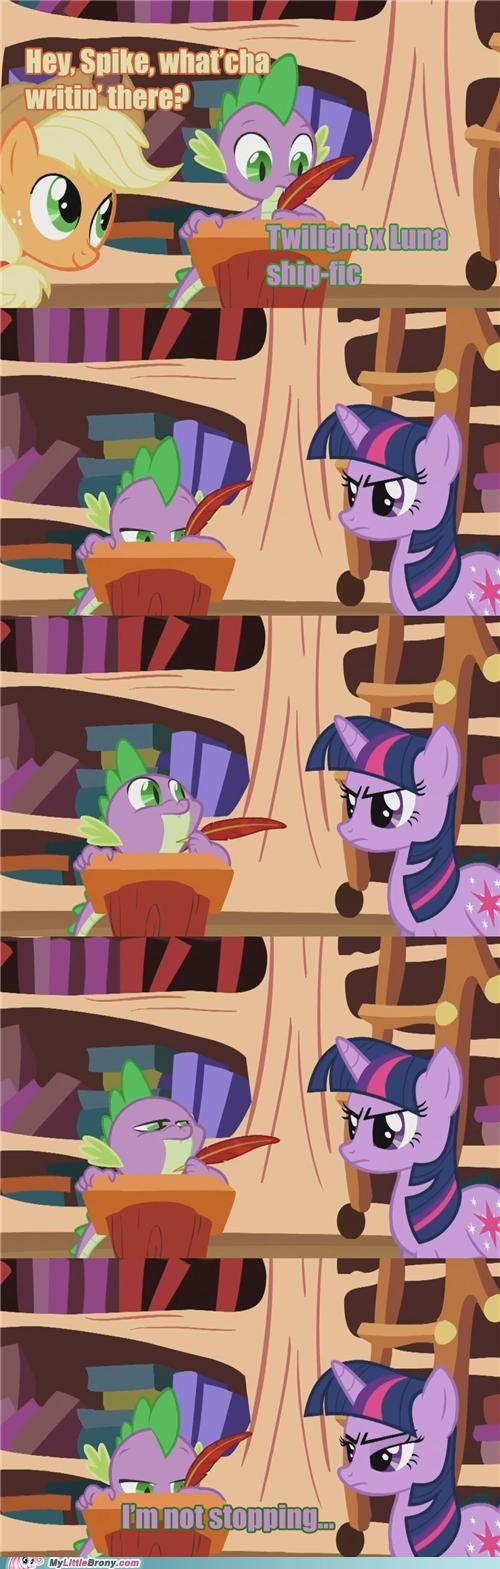 applejack best of week clopping comics luna ship-fic shipping spike twilight sparkle - 5327514112